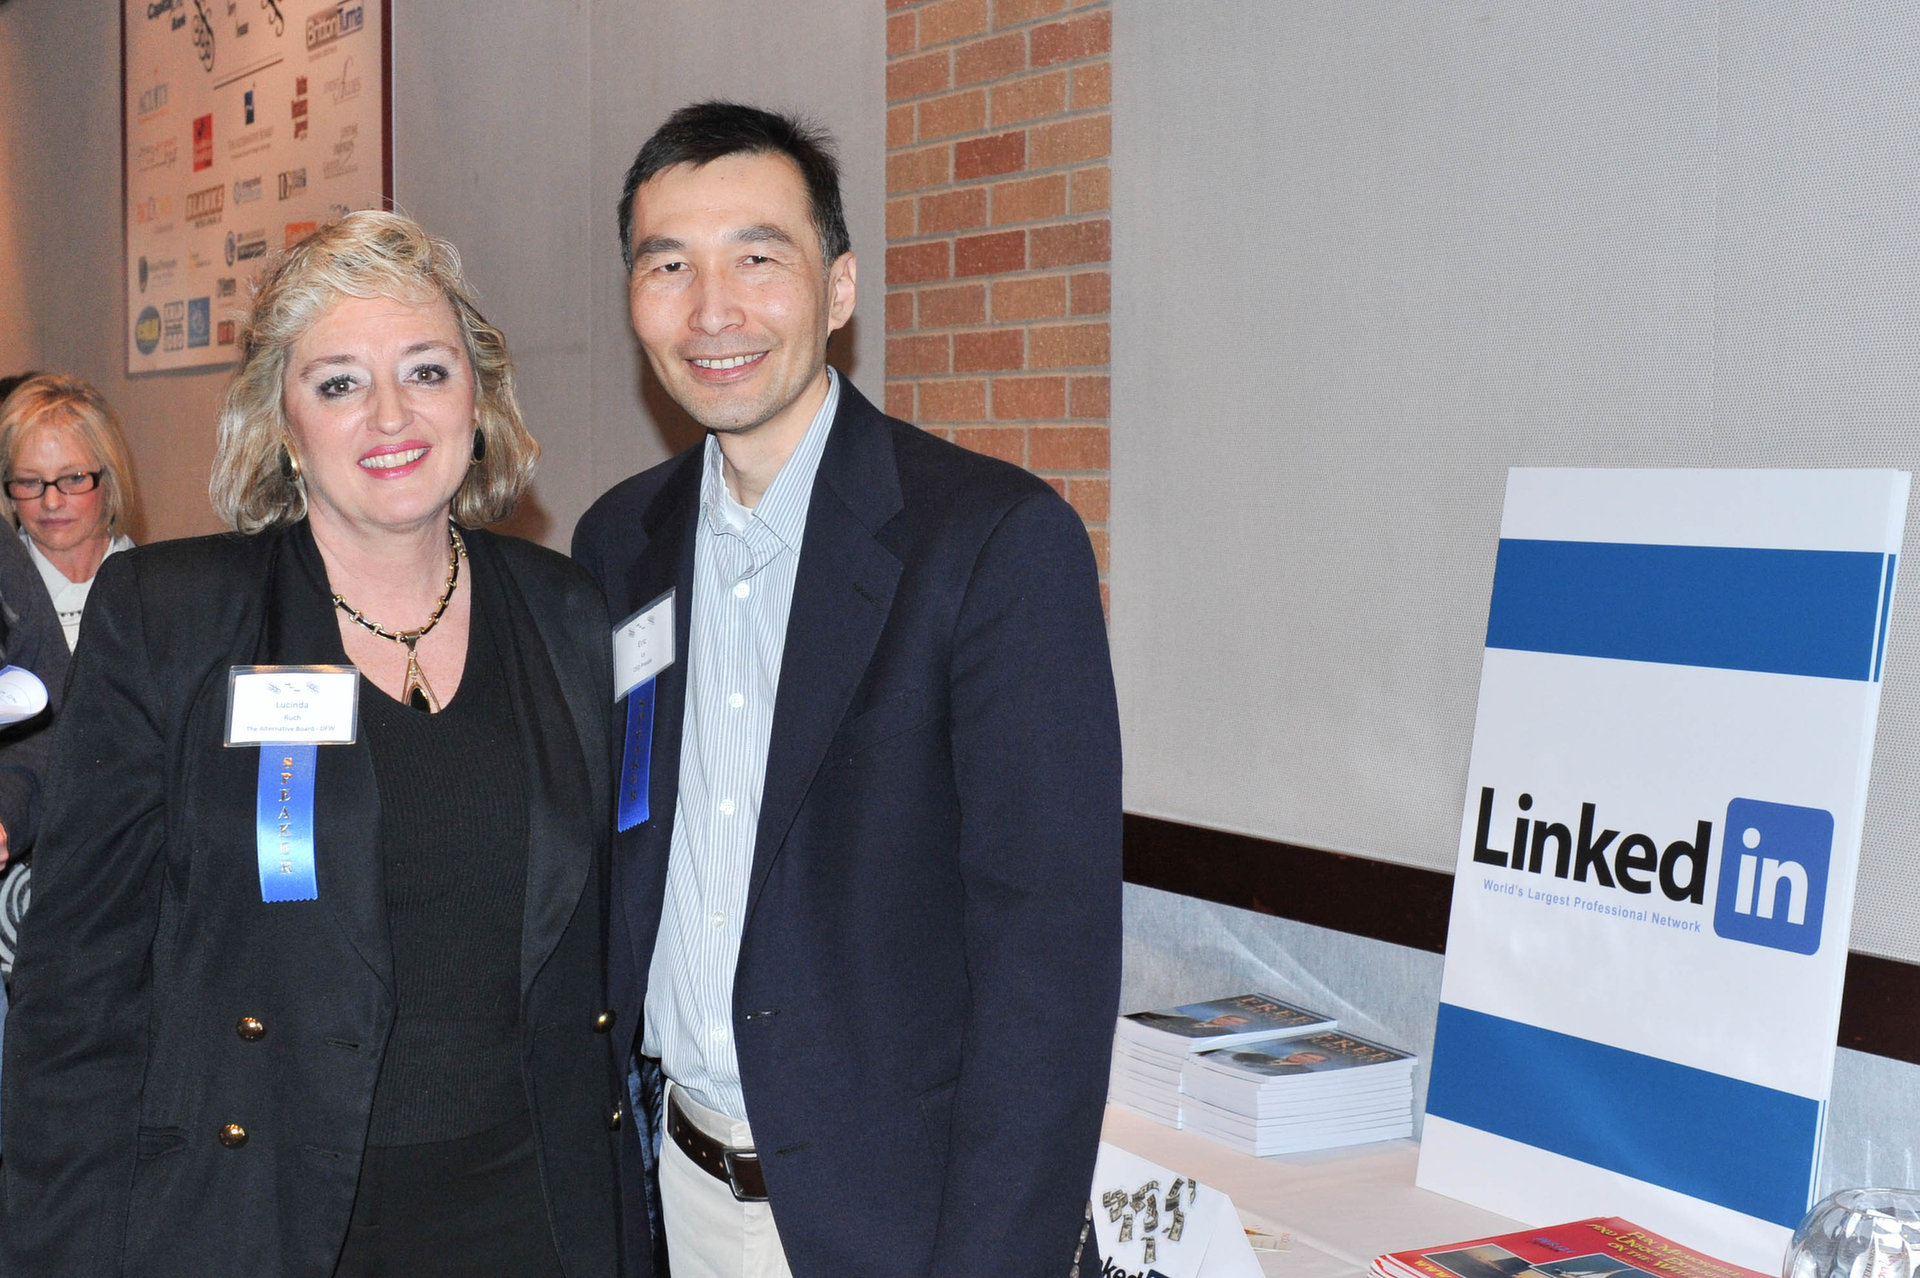 Lucinda Ruch & Eric Ly